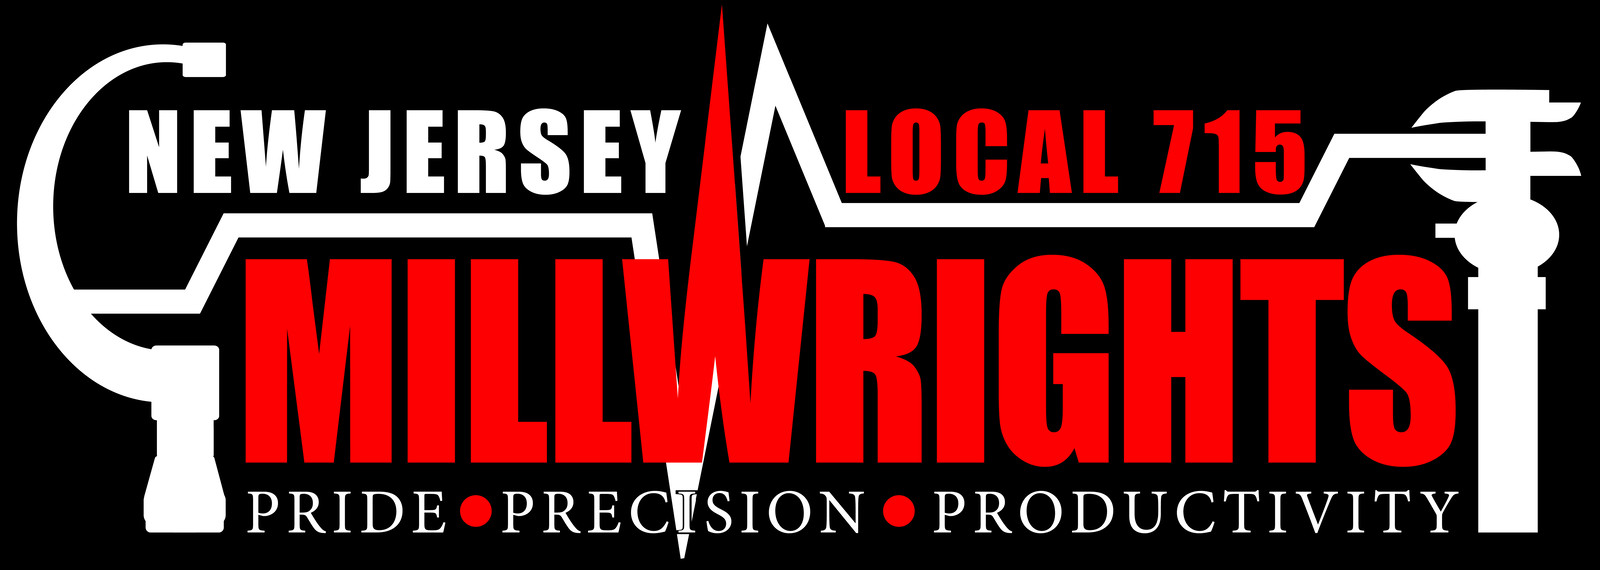 Millwright Logo revised (unofficial)